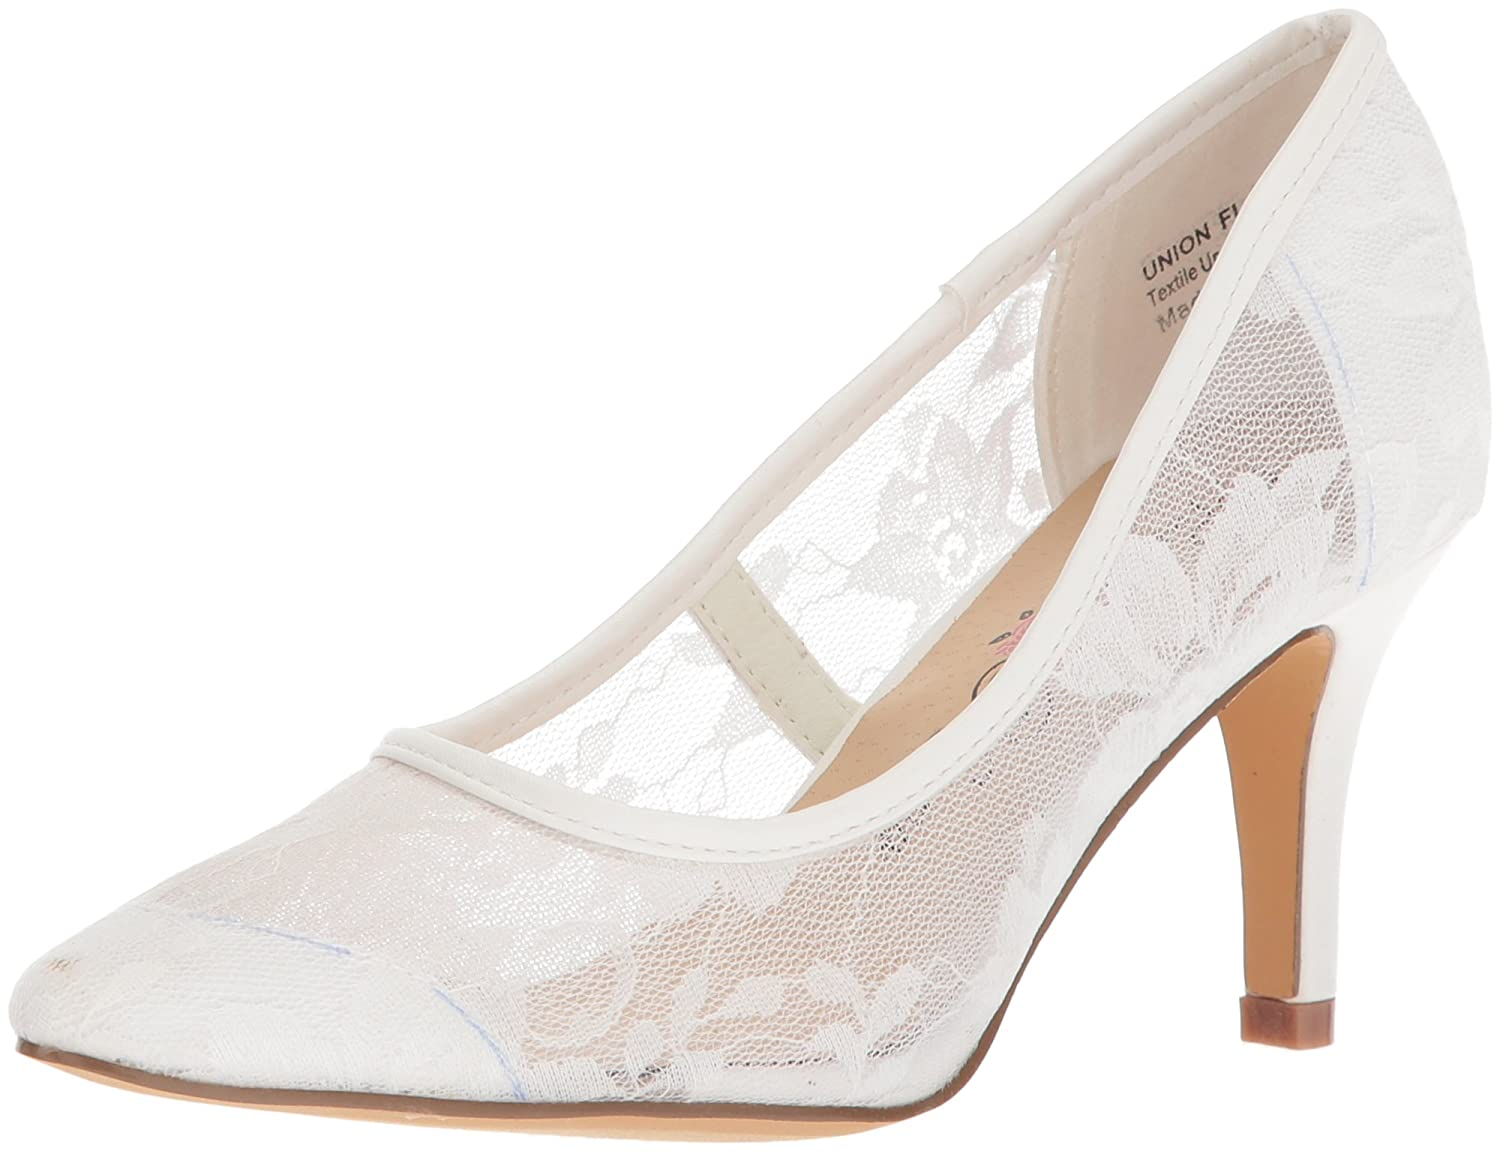 Penny Loves Kenny Women's Union Fl Pump B076FDWCH1 12 W US|White Lace